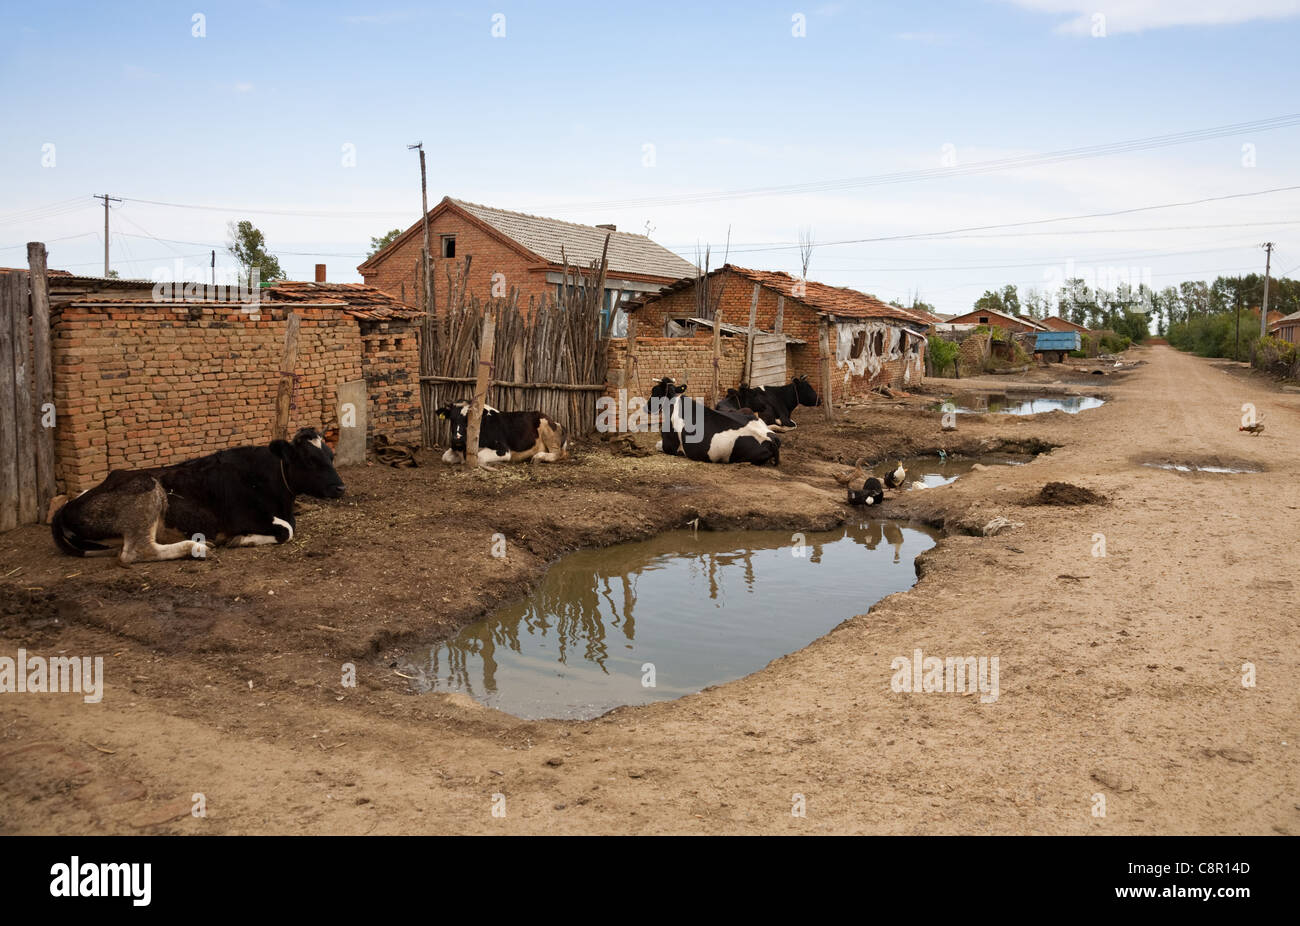 Poverty - poor housing in a village, north east of China. - Stock Image